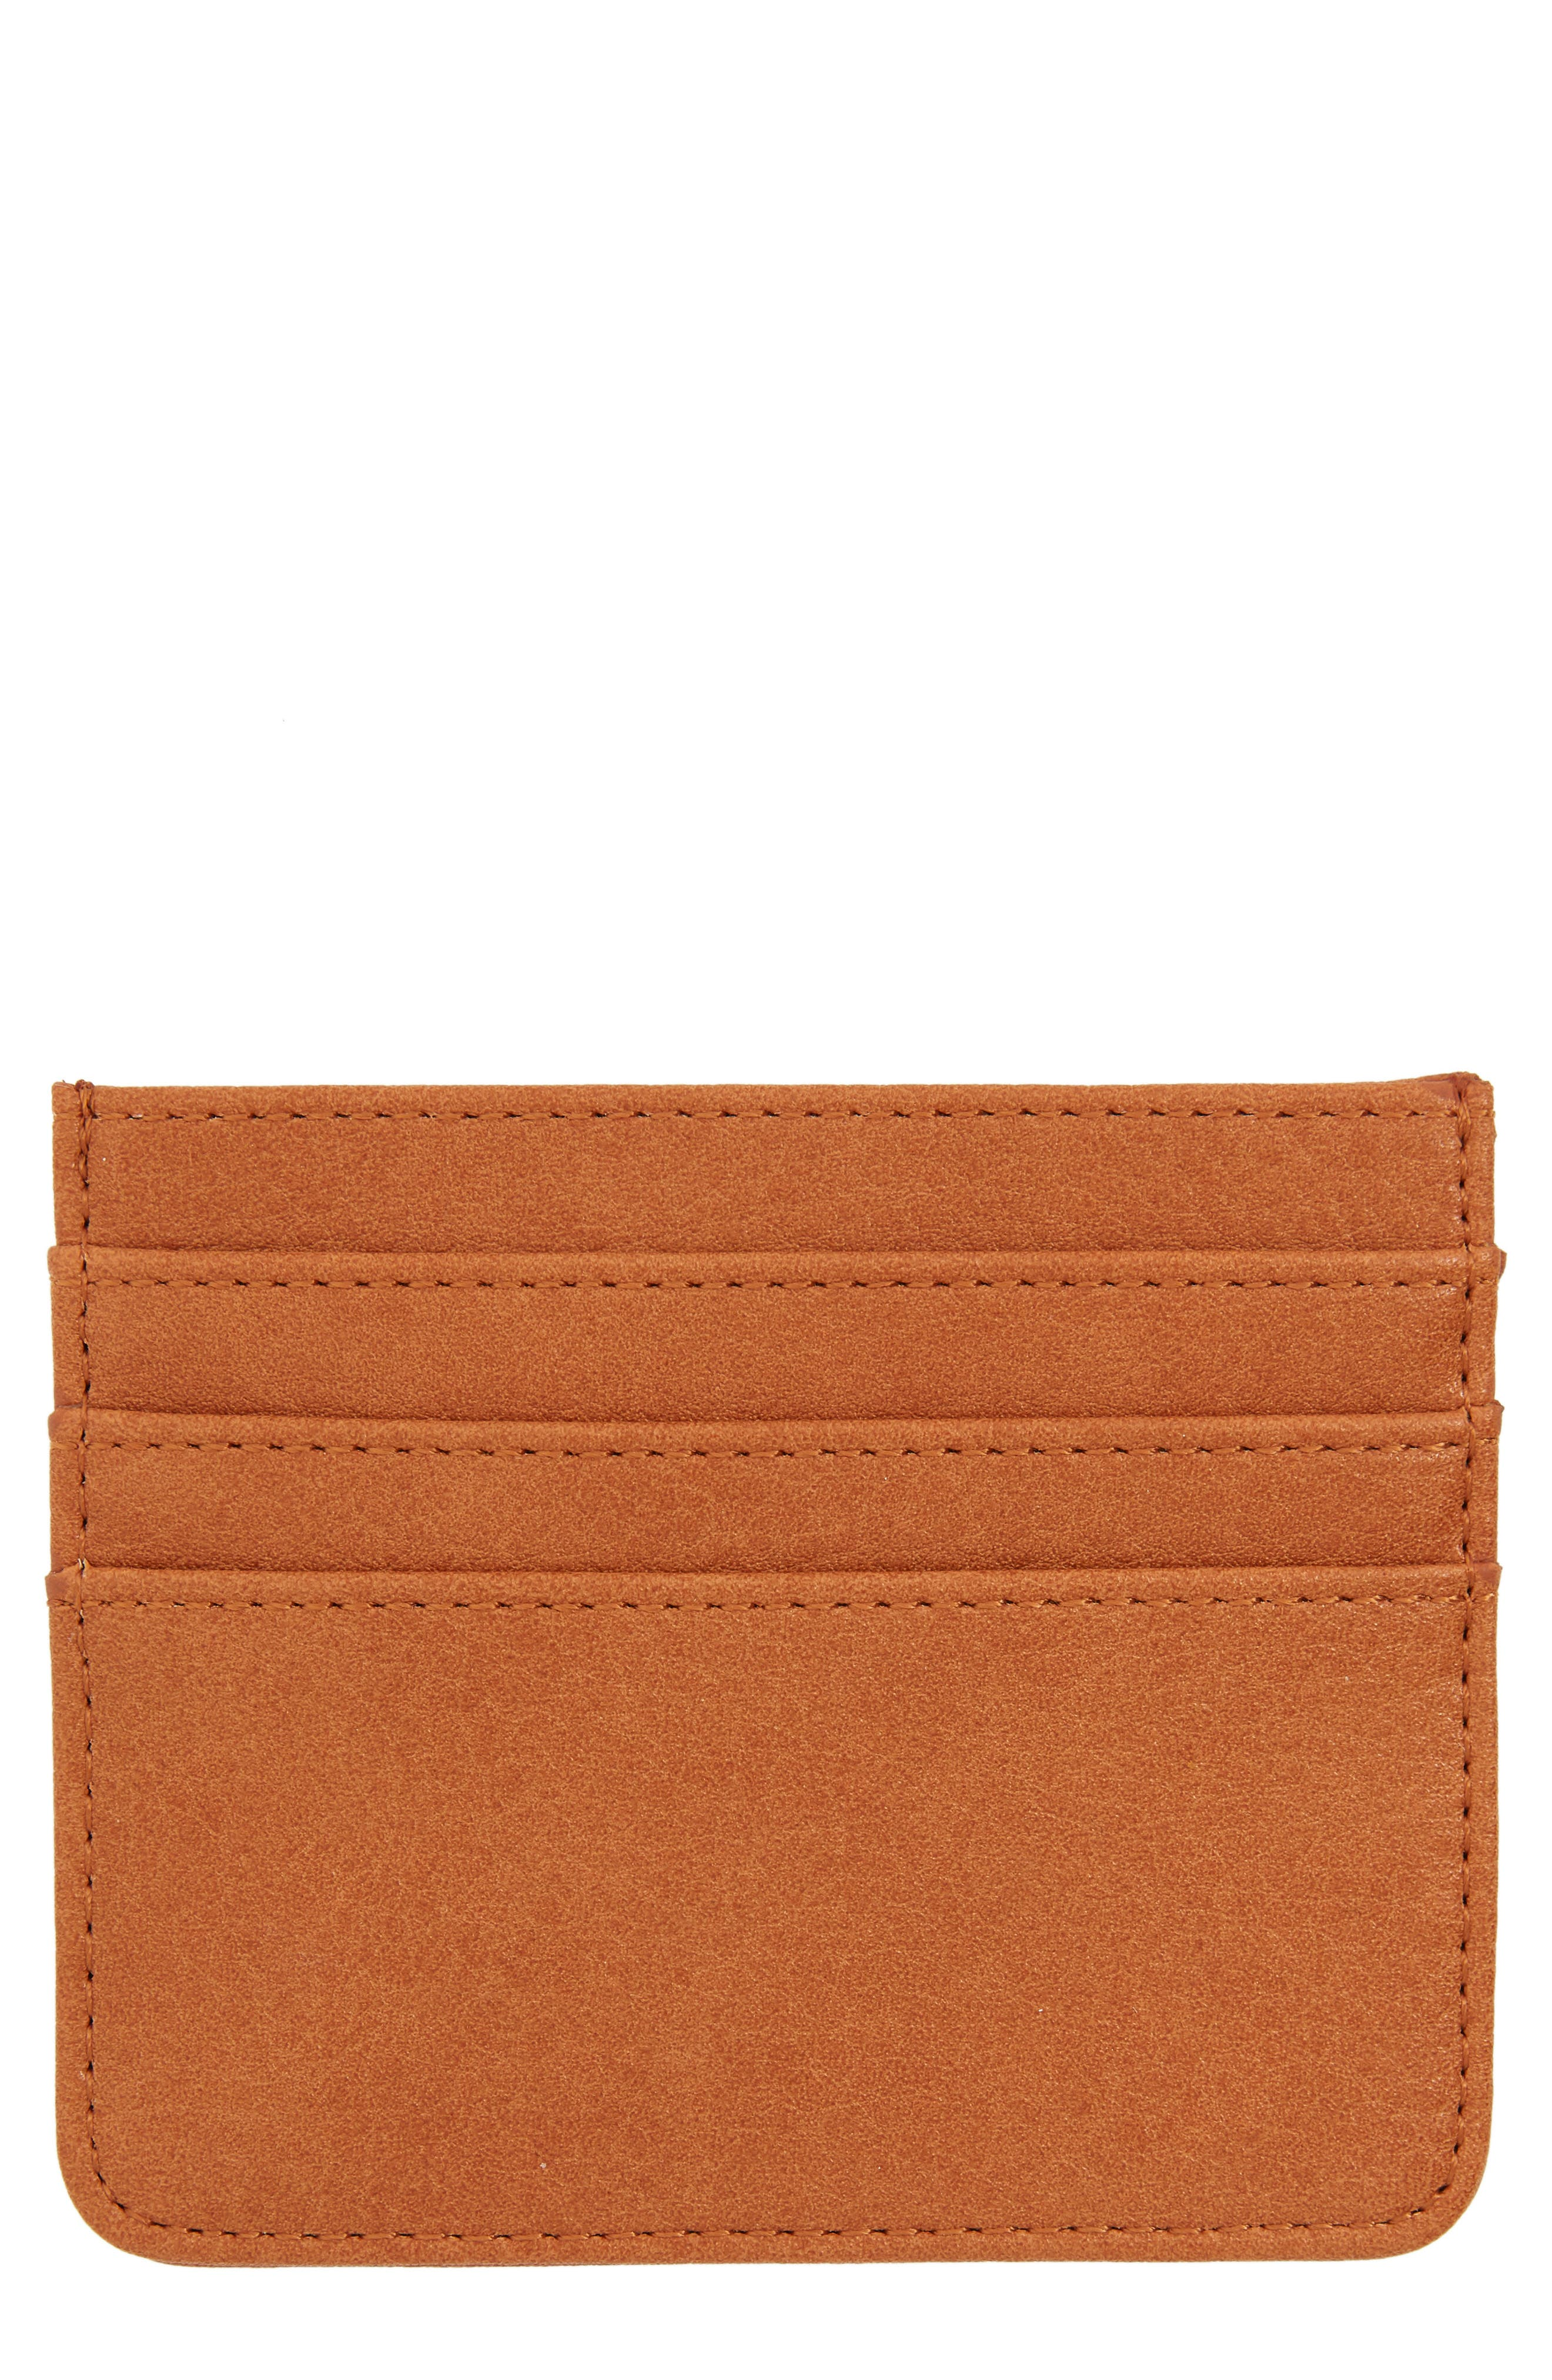 Main Image - BP. Faux Leather Card Case